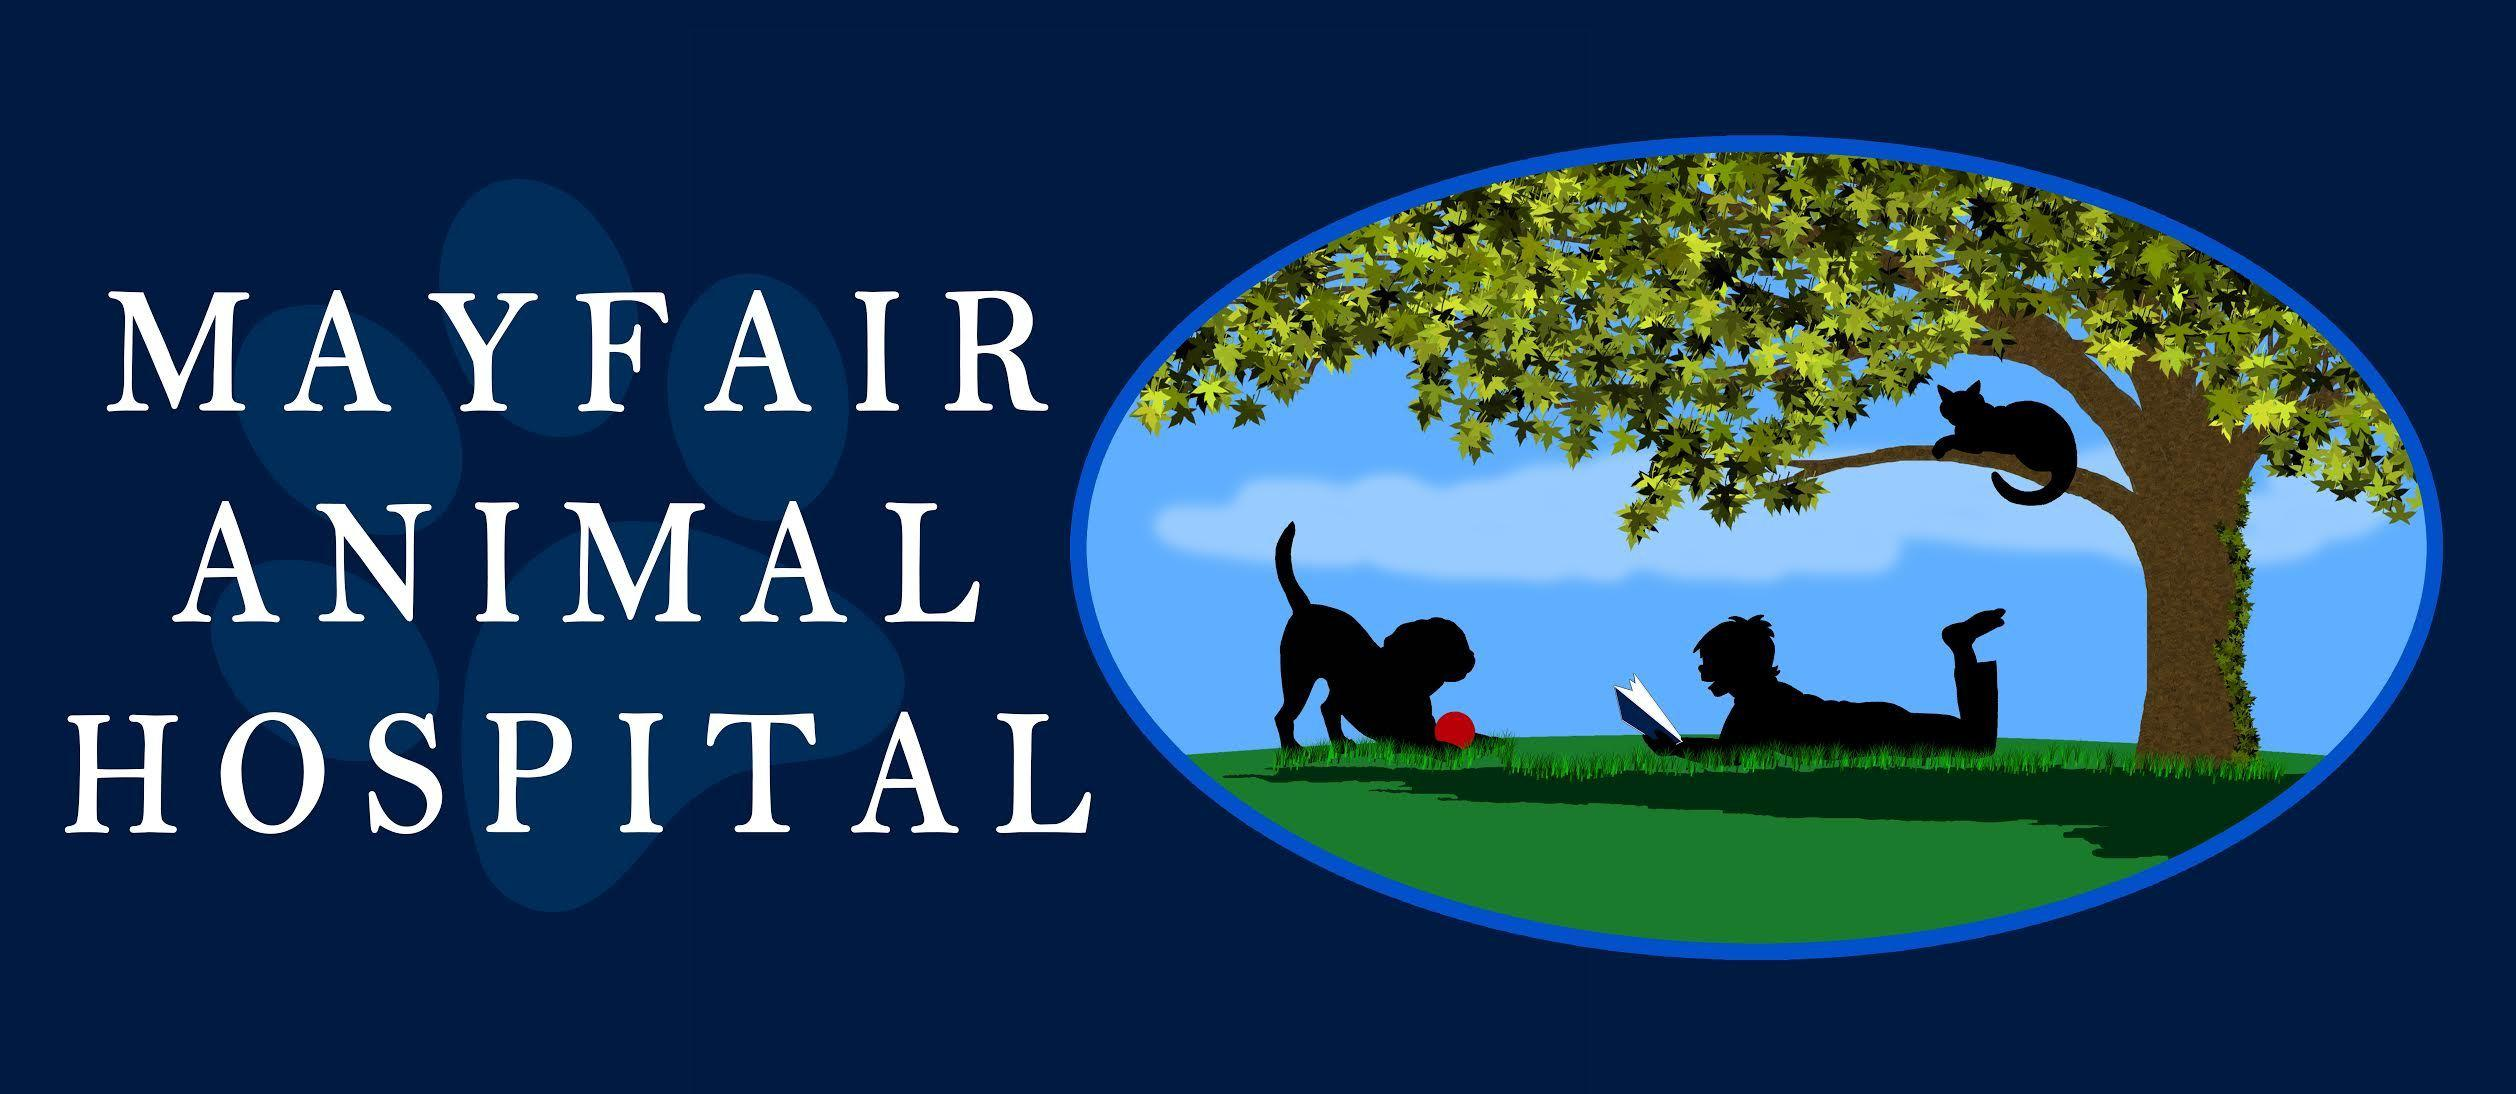 Mayfair Animal Hospital logo